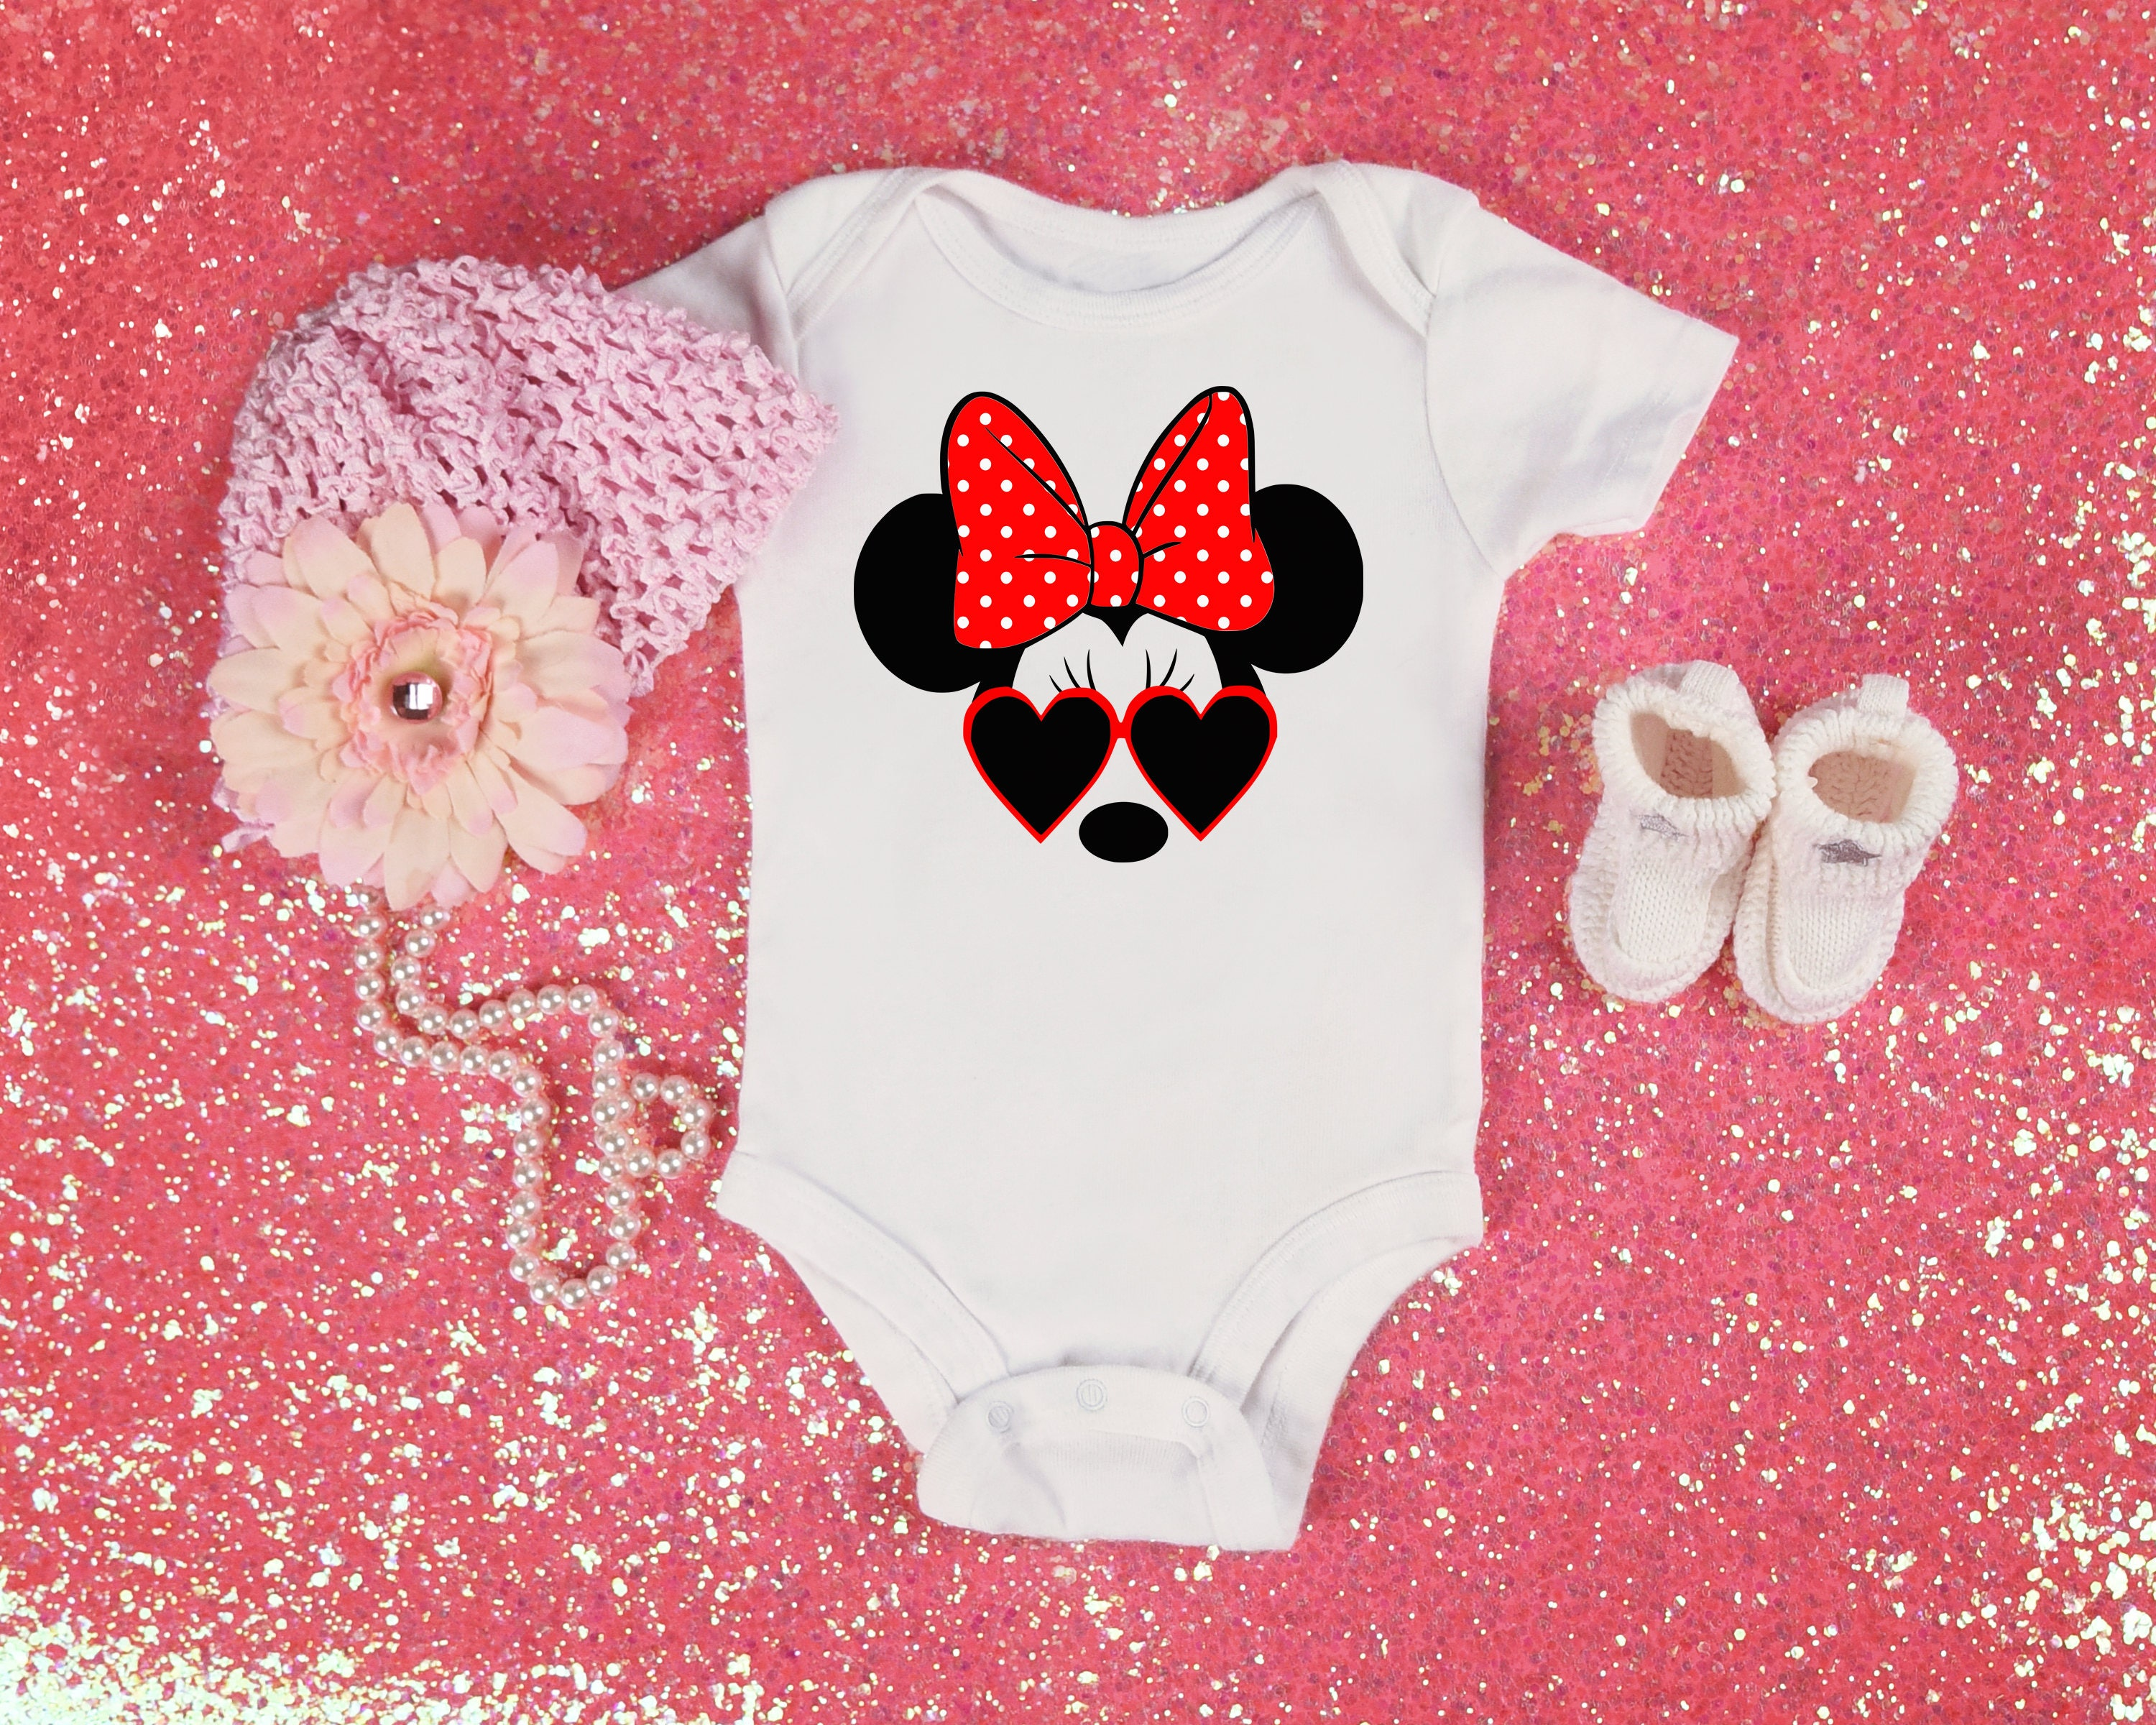 Minnie mouse baby onesie funny graphic kids shirt baby girl